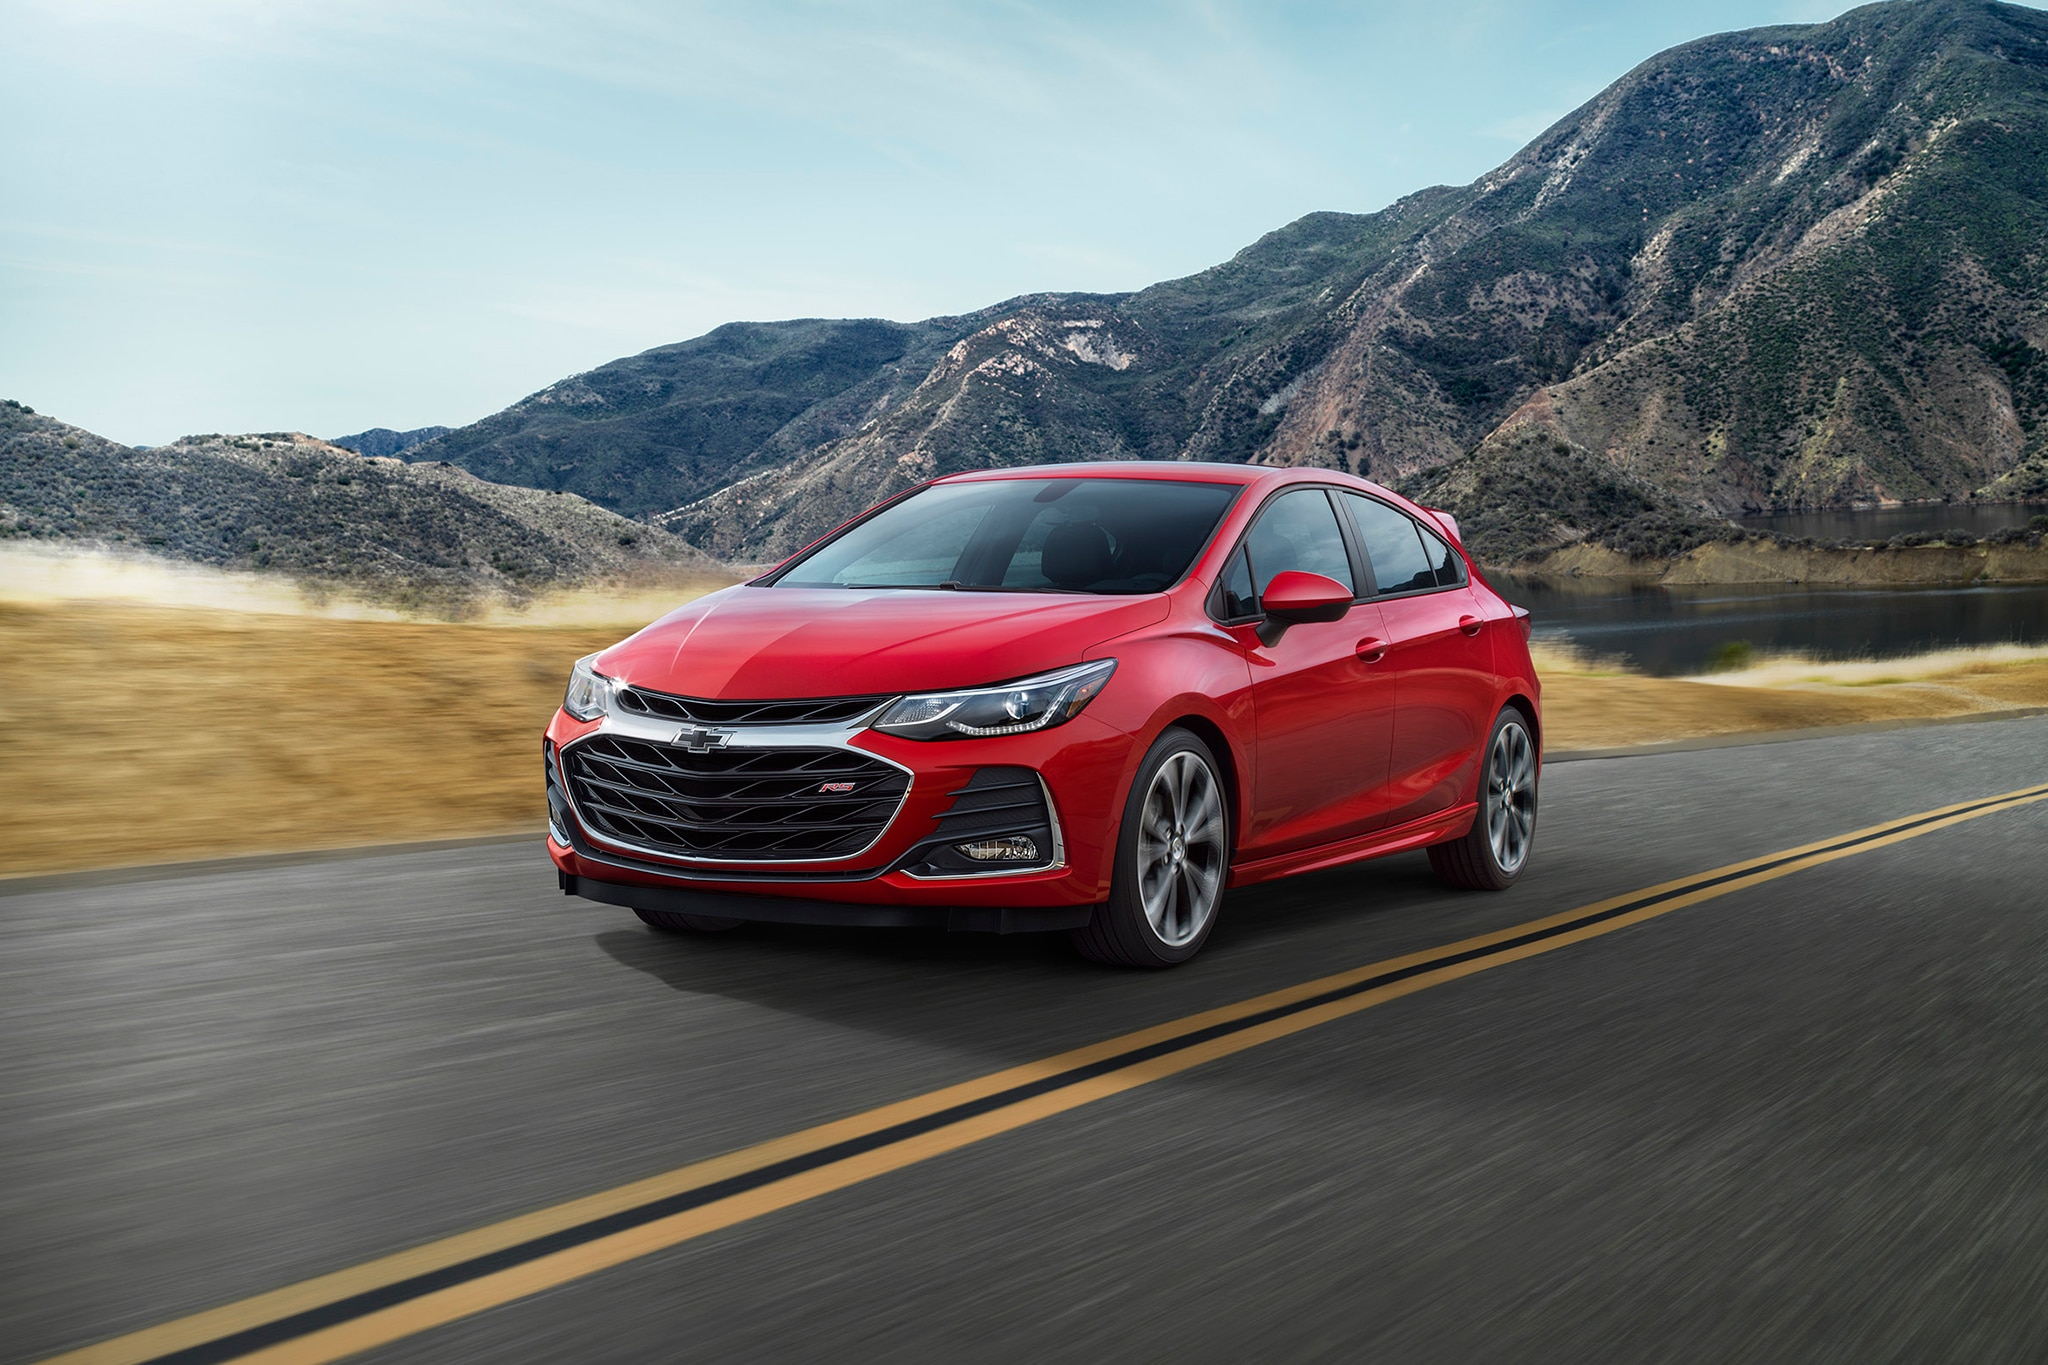 2019 Chevrolet Cruze, Malibu, and Spark Show Their Teeth ...